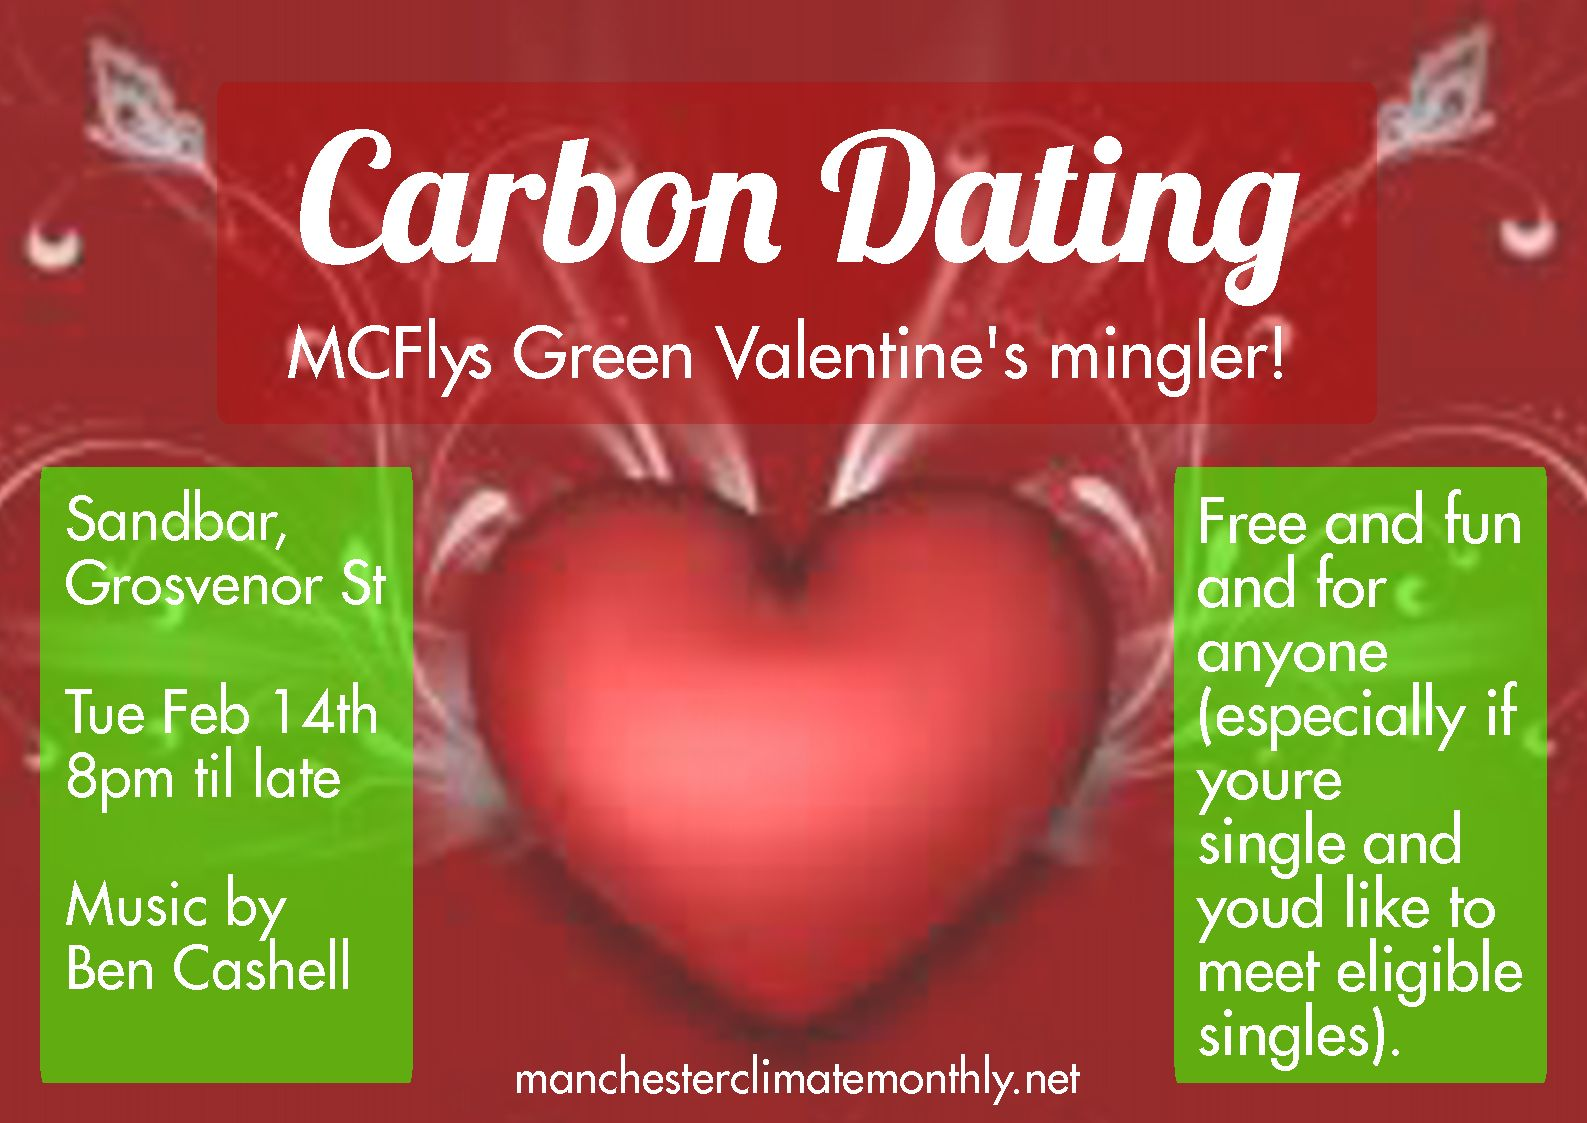 Interesting carbon dating